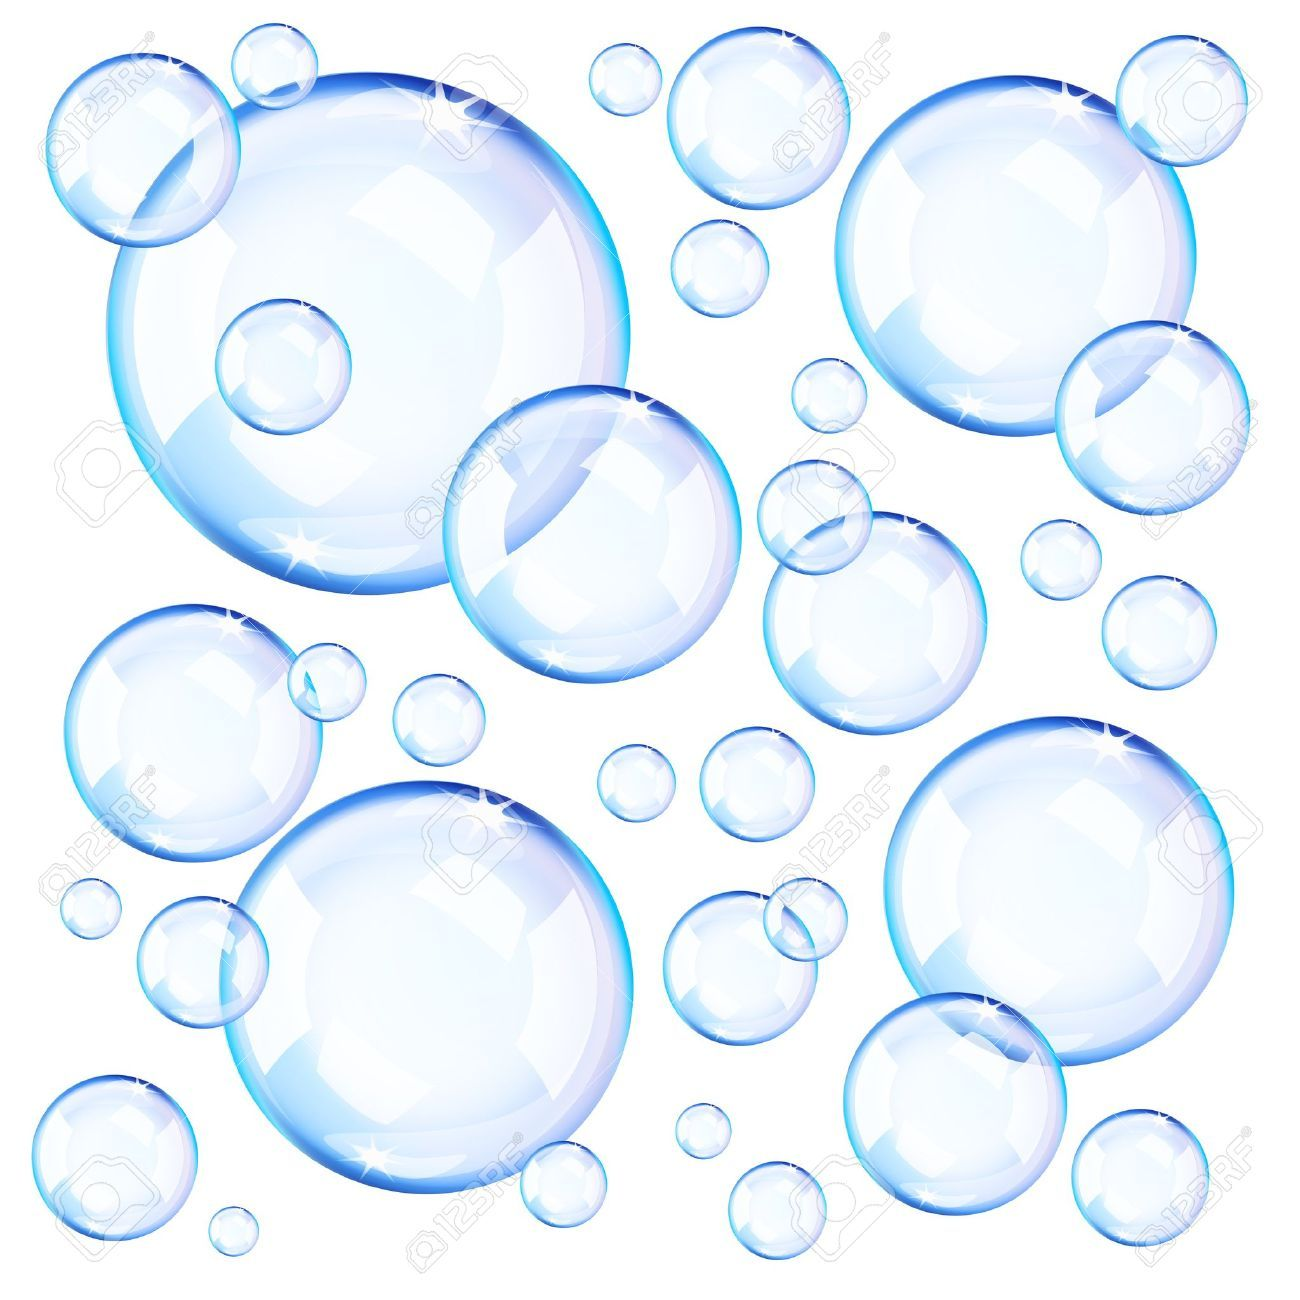 Pencil and in color. Bubble clipart transparent background